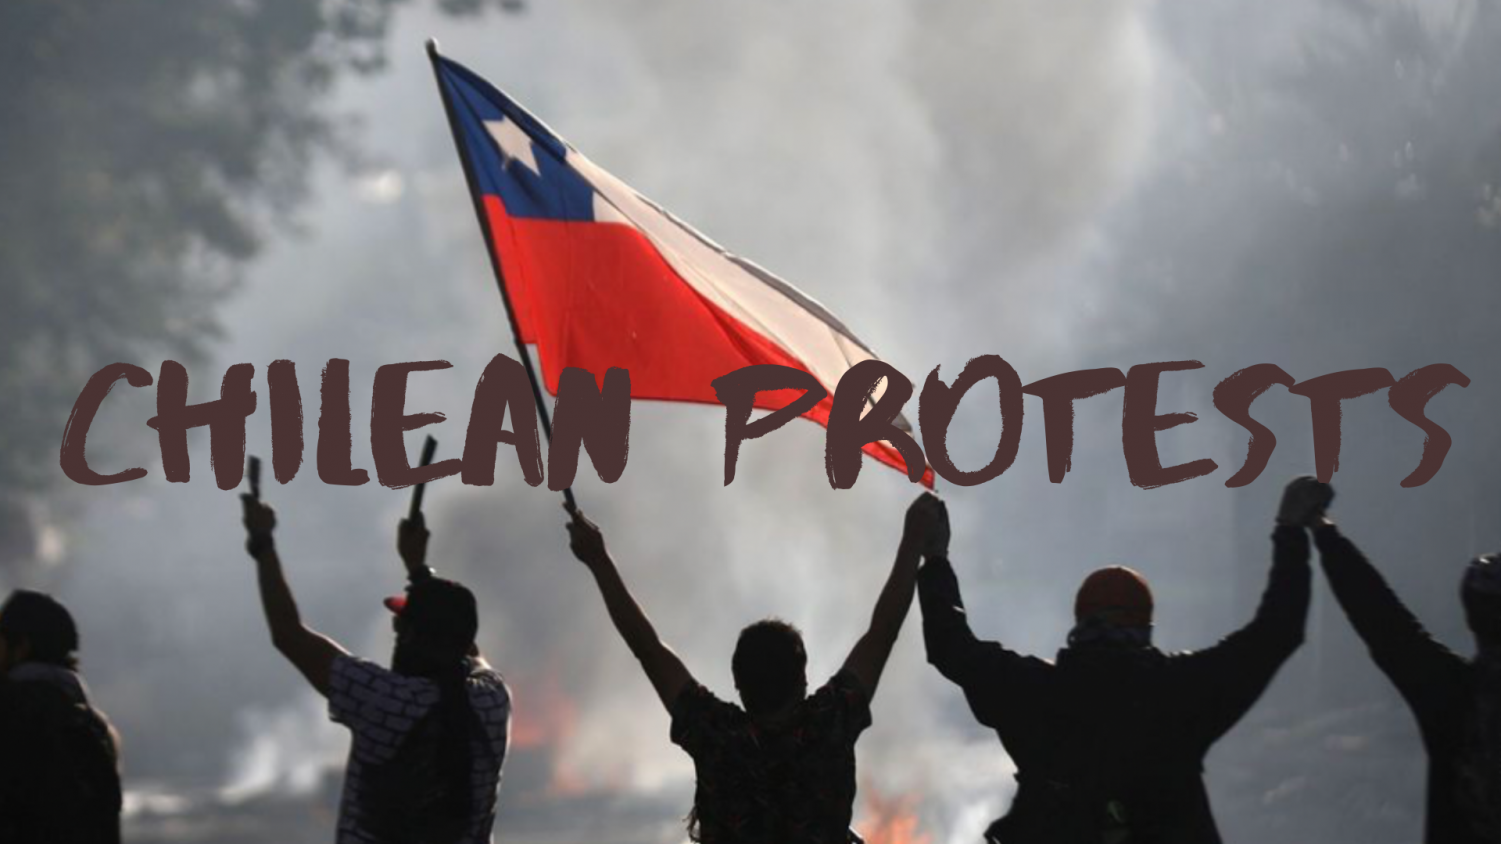 A group of Chilean Protesters in front of a fire